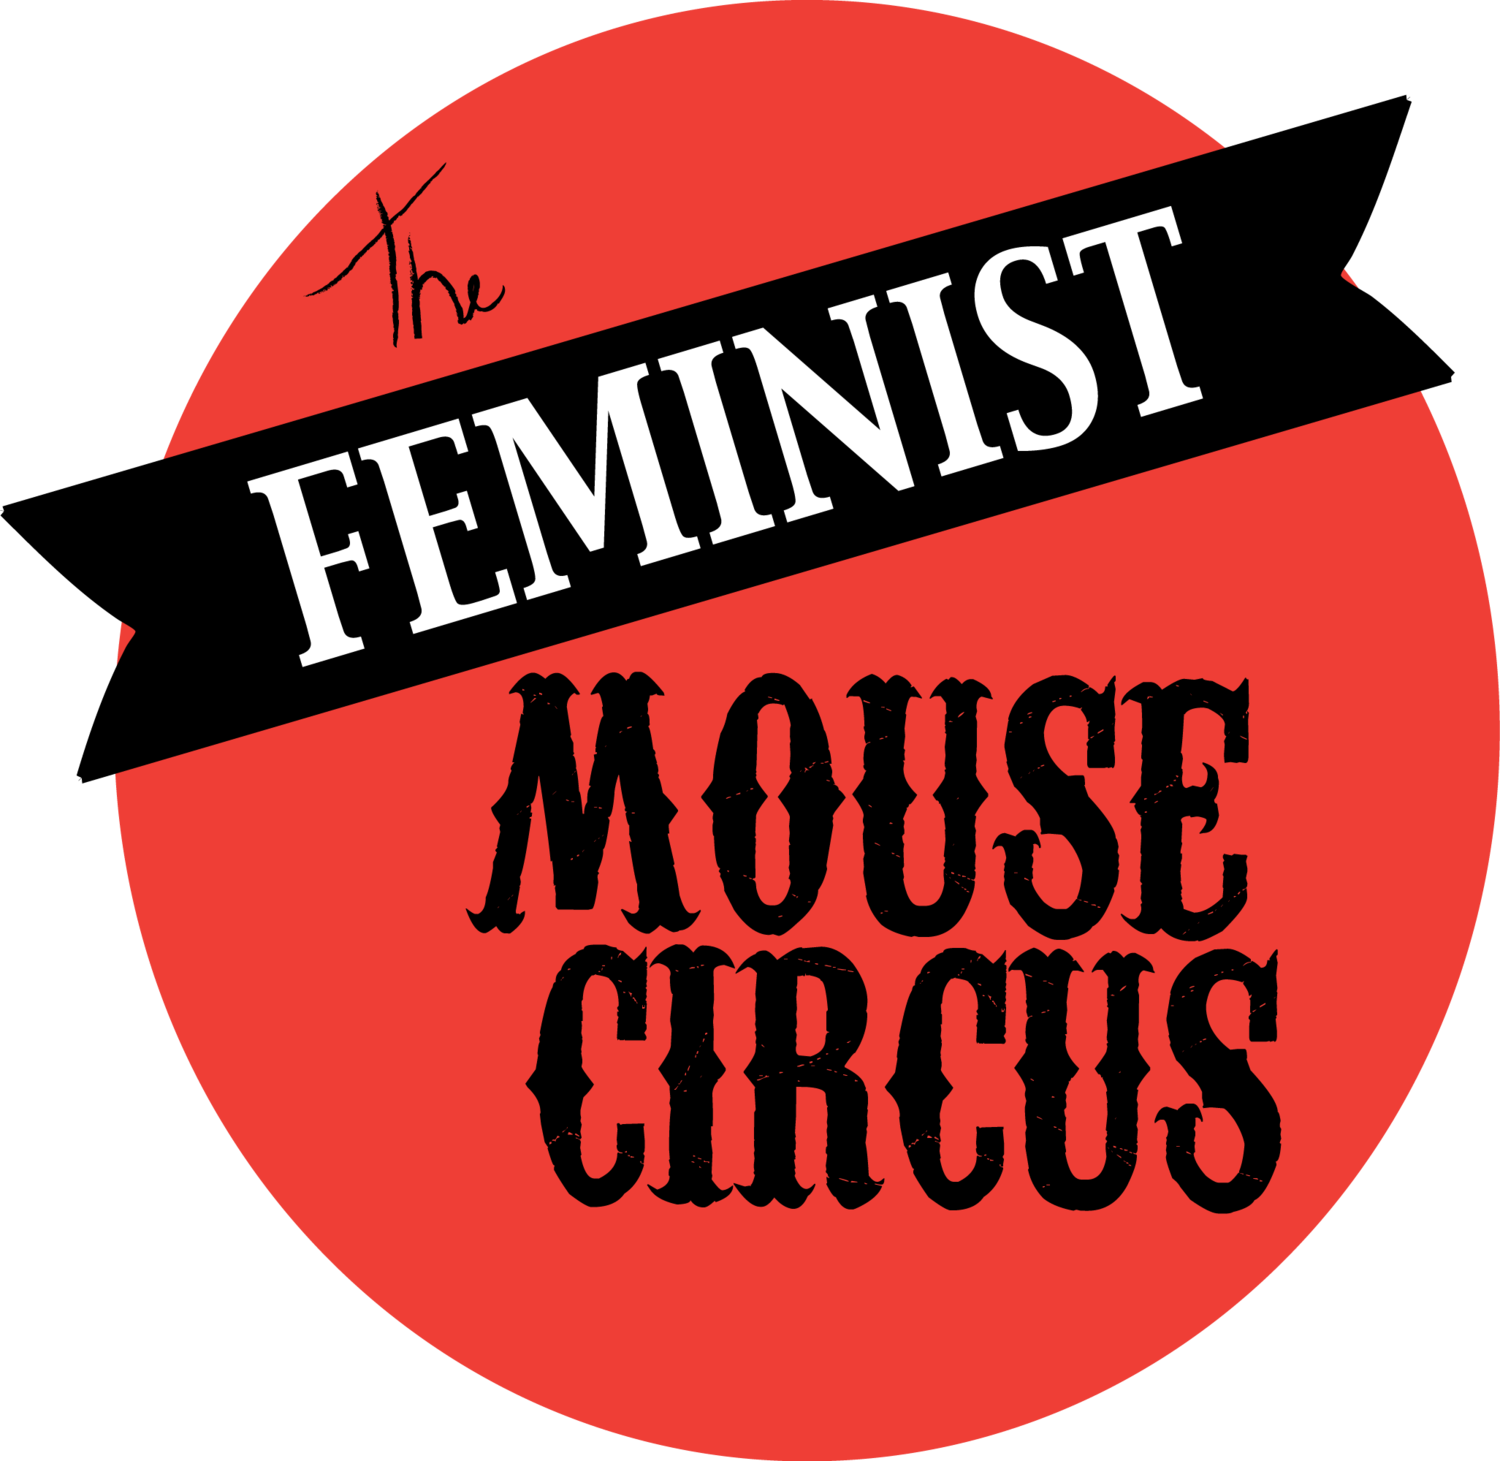 The Feminist Mouse Circus